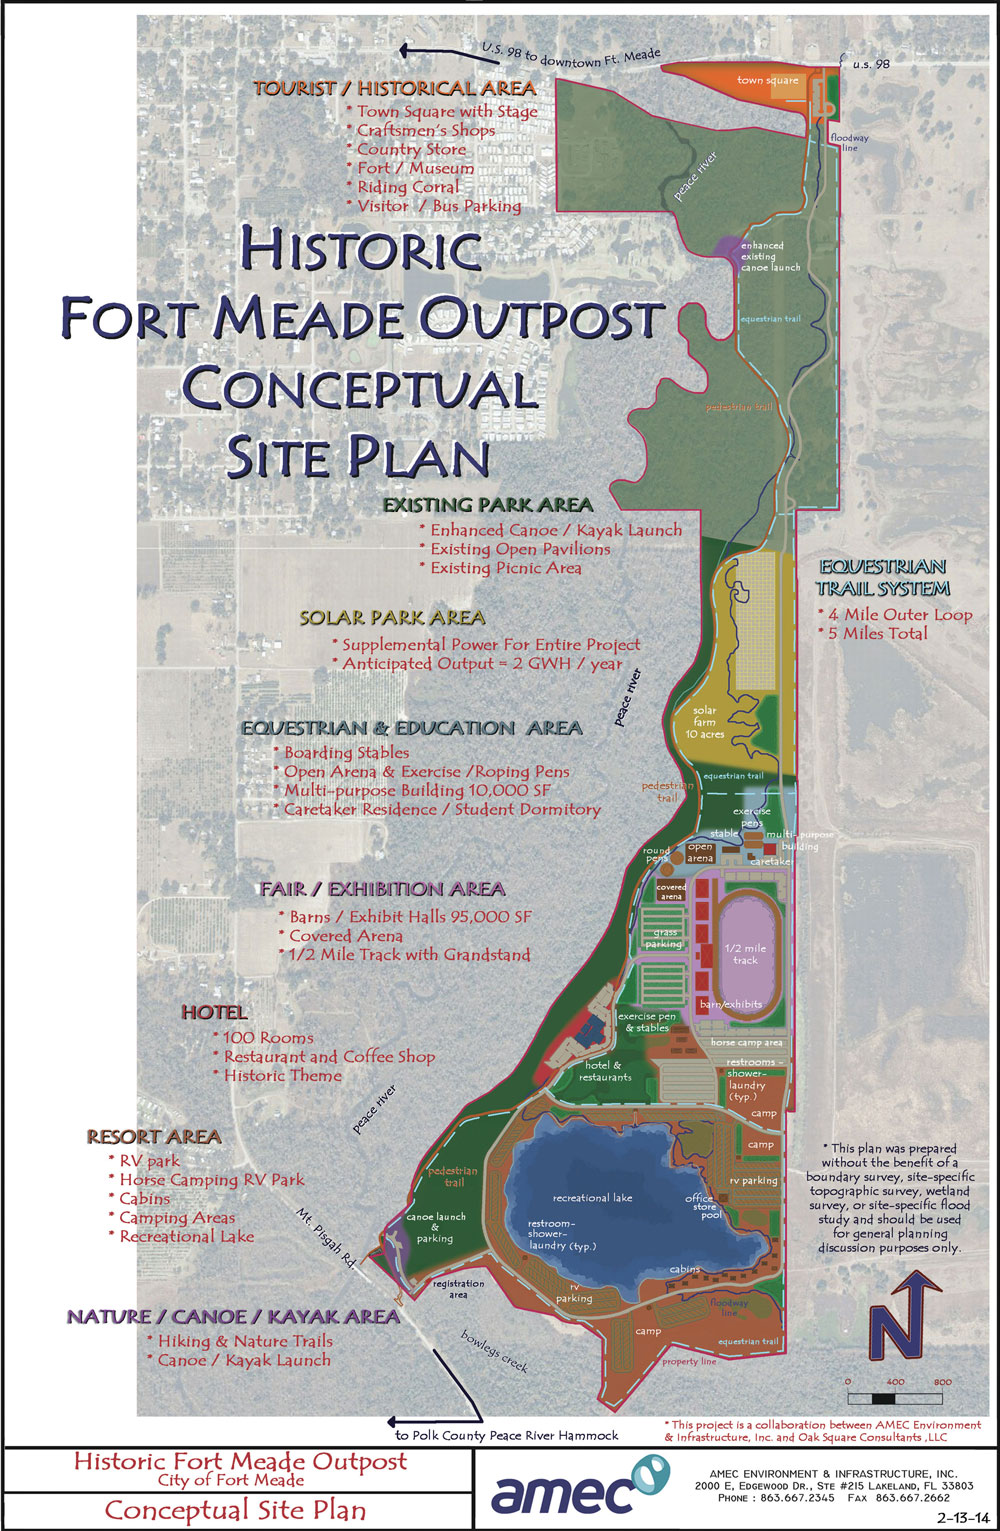 The Historic Fort Meade Outpost is a new tourist destination